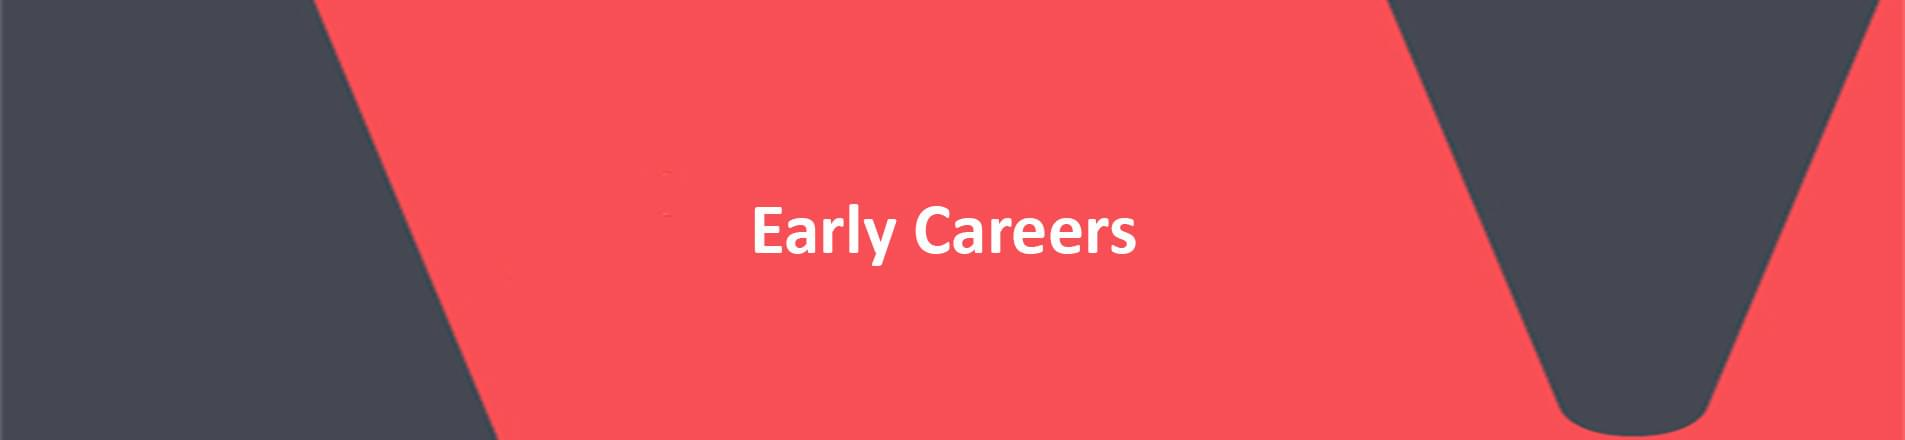 Image of the words early careers on a red background